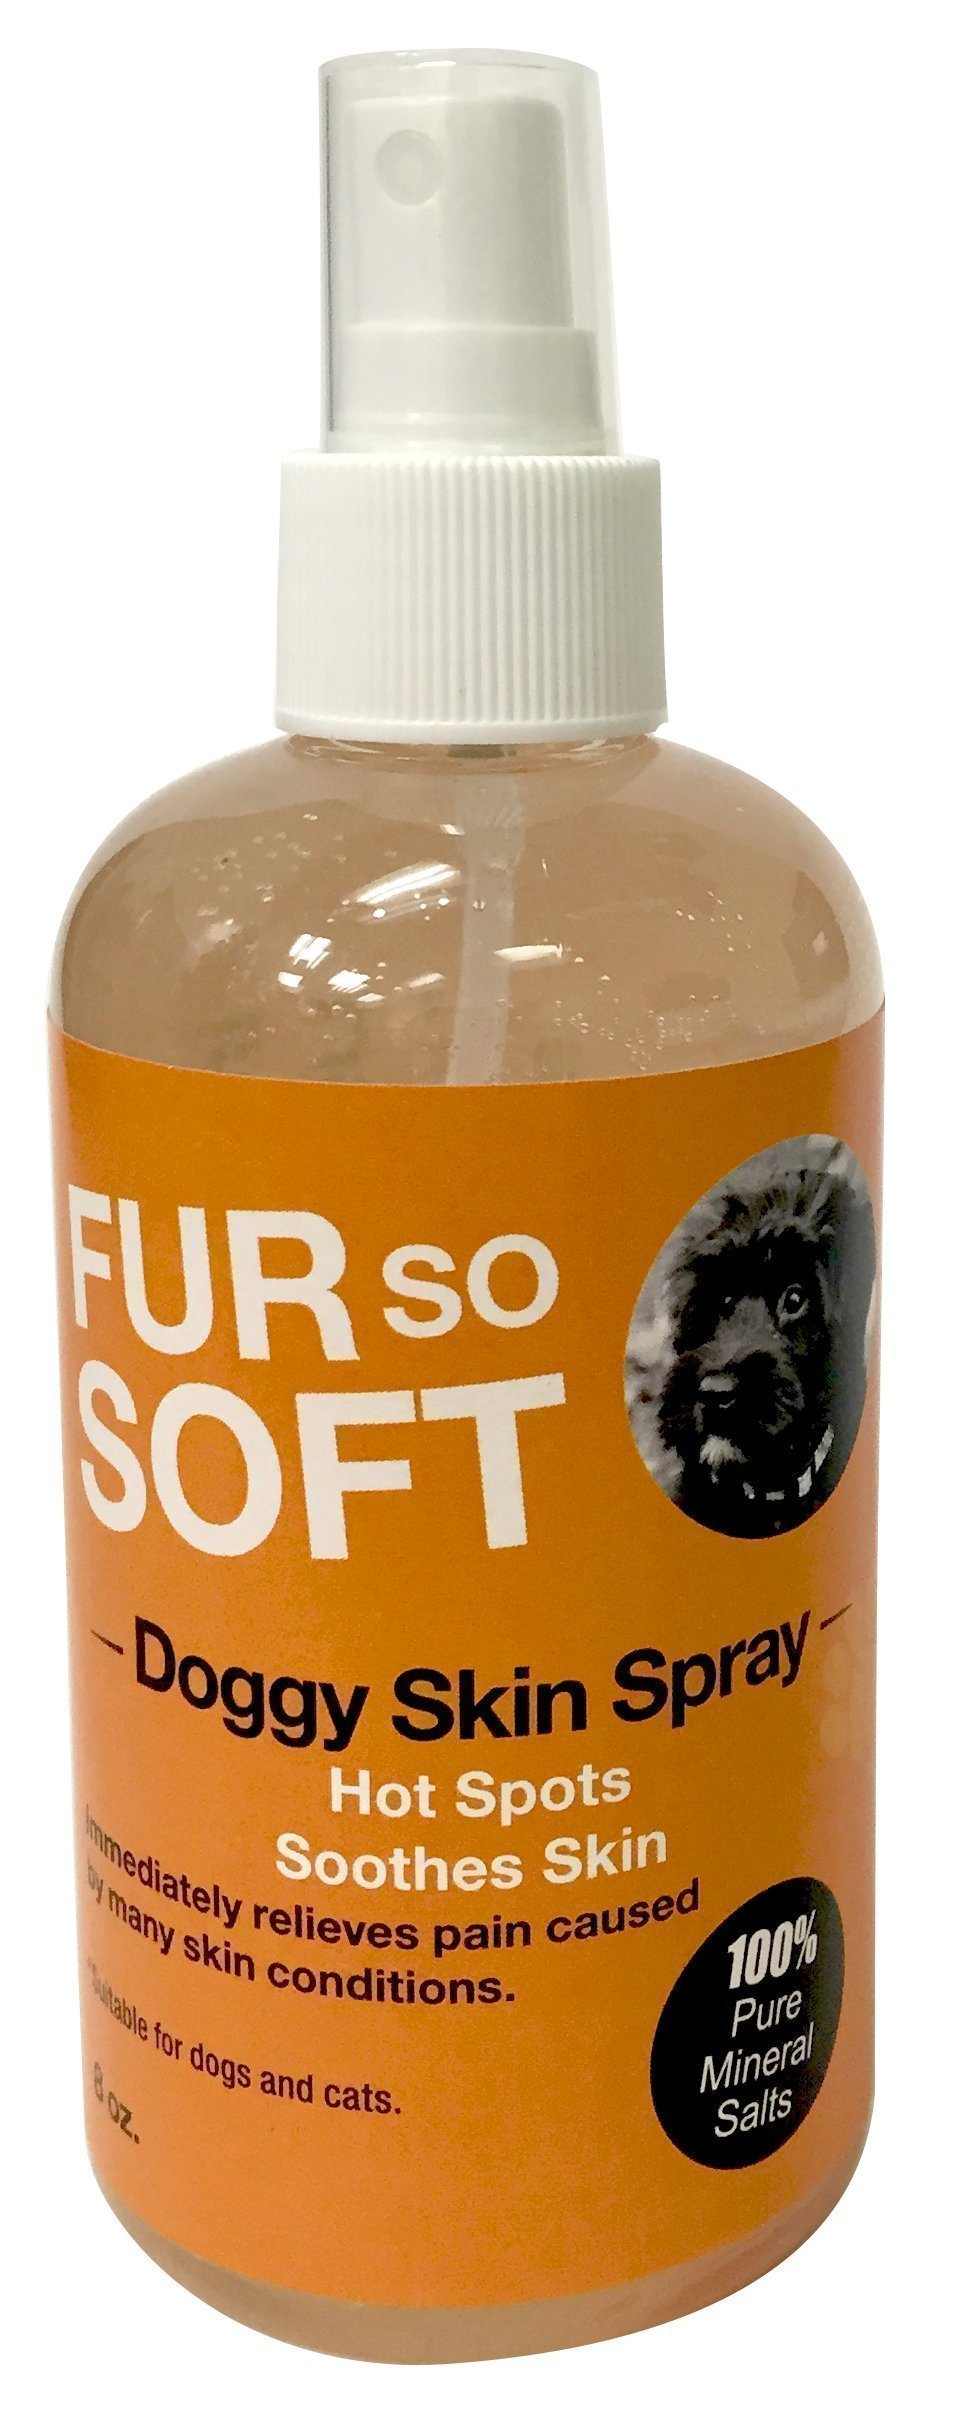 Dog Skin Spray. 100% Pure All Natural. Soothe & Calm Irritations - Hotspots - Bites - Allergies - Razer Rash - Flaky skin flare ups. Hypoallergenic. No mess, handy and easy to use.